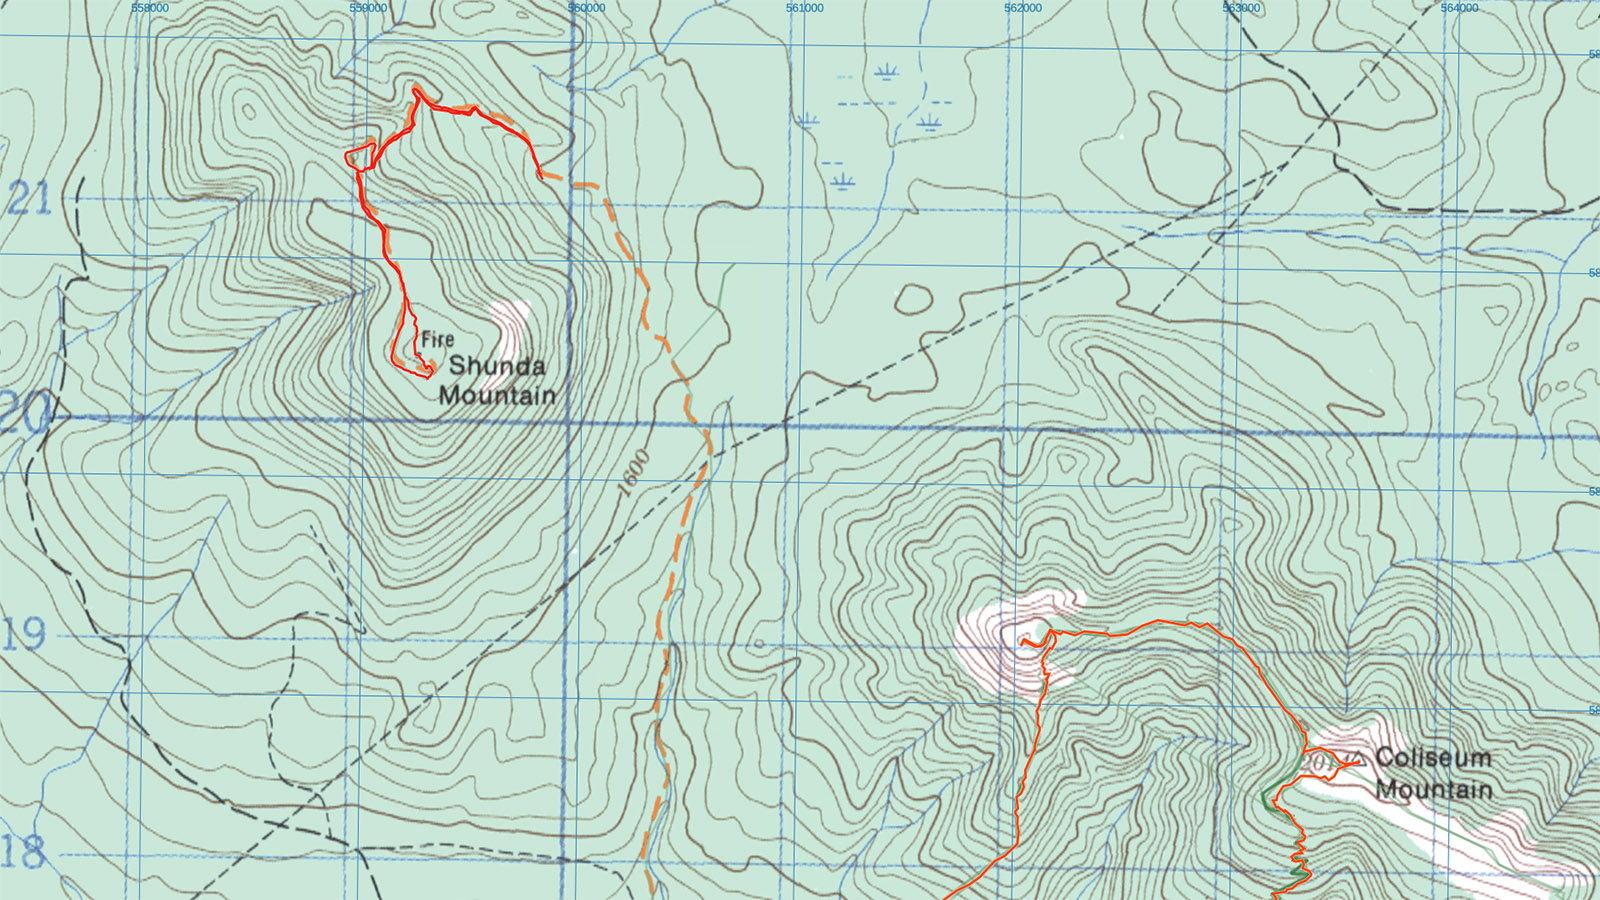 Shunda Mountain / Baldy Fire Lookout Route Map